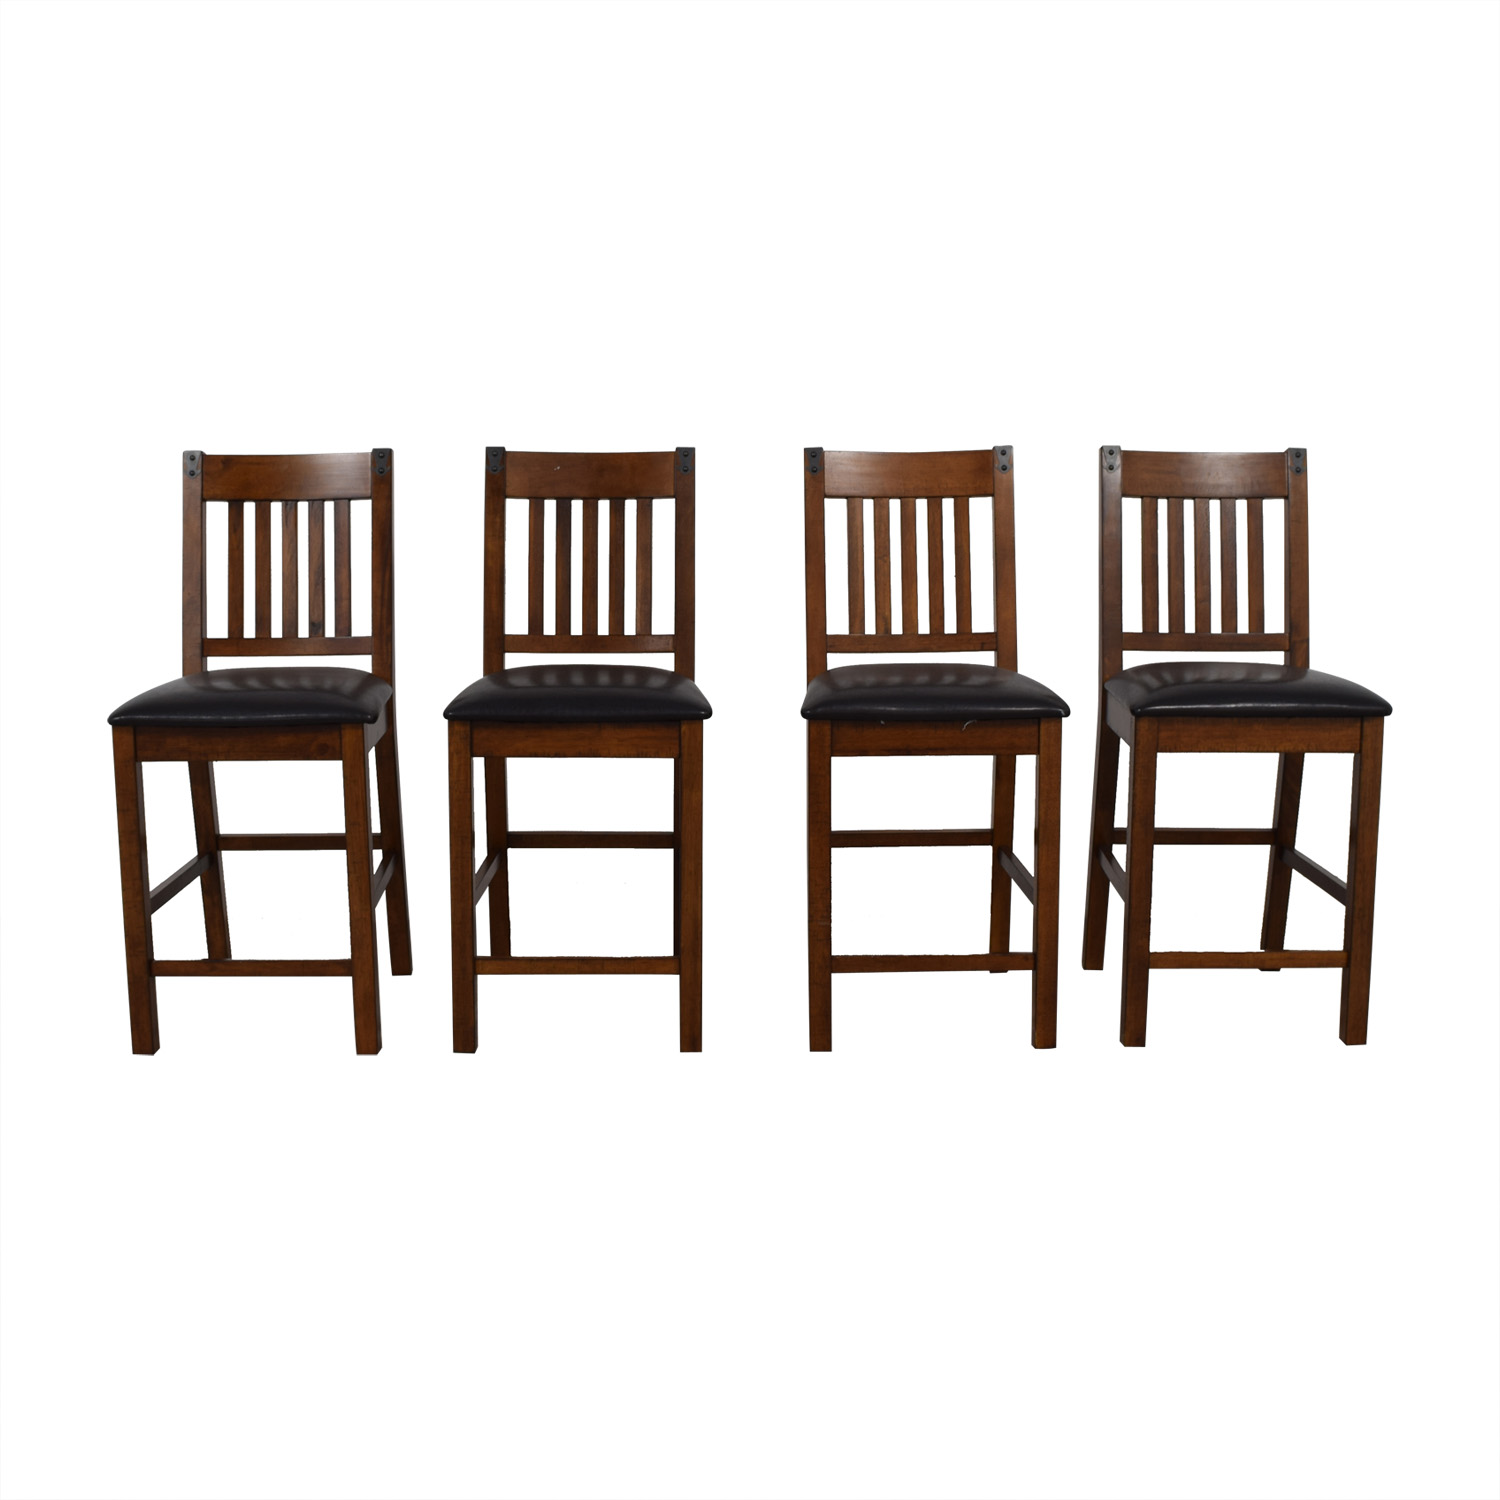 Wood and Black Dining Chairs / Dining Chairs